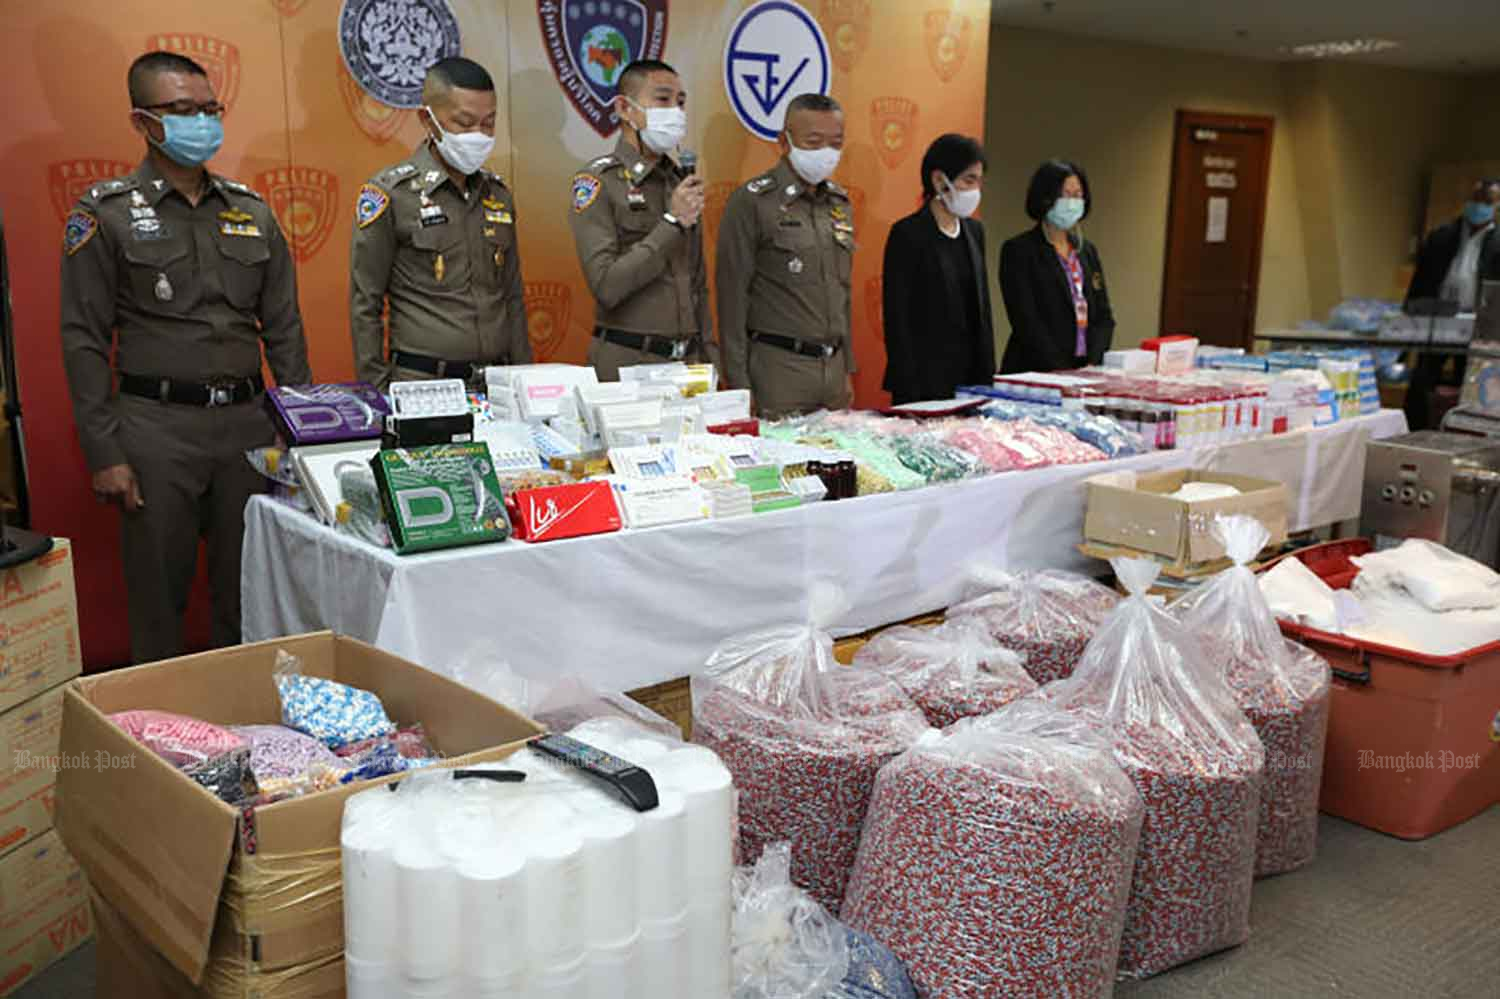 Consumer protection police and Food and Drug Administration officials show the large quantity of illegal medicines, beauty products, food supplements and ingredients seized during the raid in Nakhon Pathom on Tuesday. (Photo: Varuth Hirunyatheb)